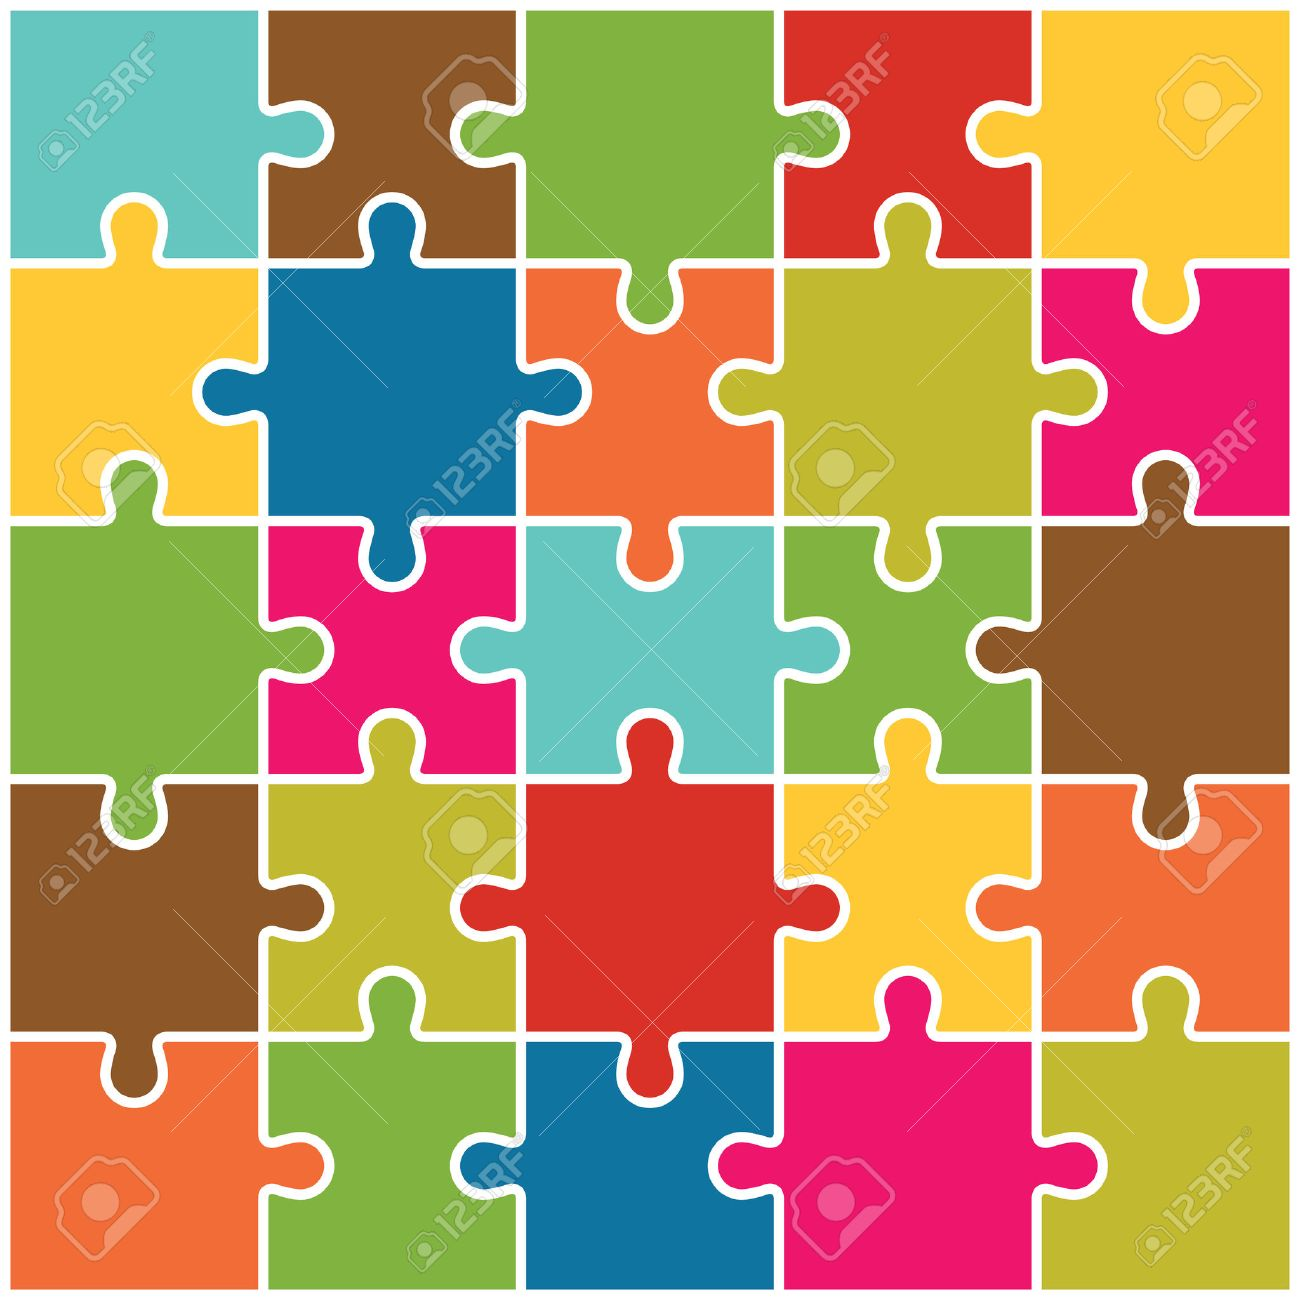 Jigsaw Puzzle Pieces Background Vector - 38160456